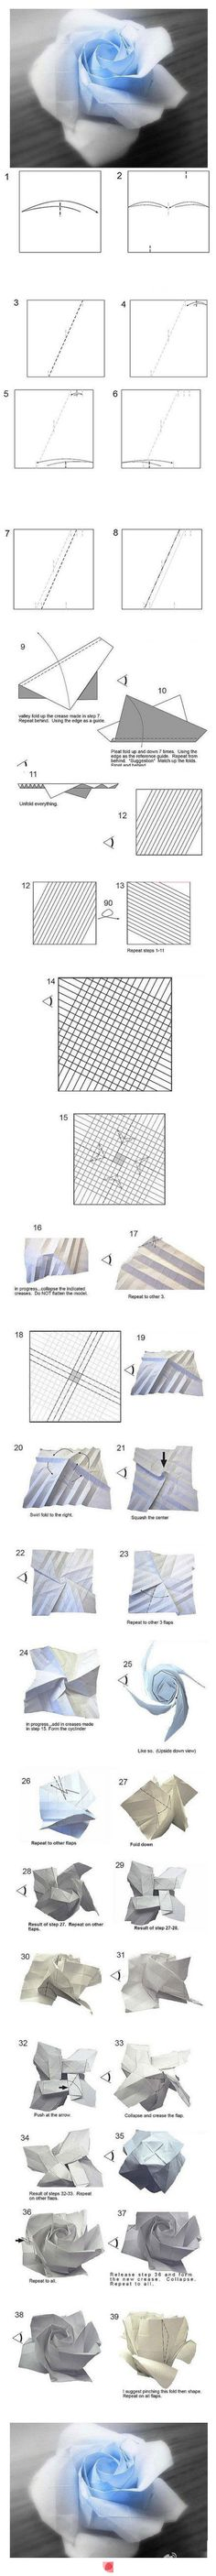 Rose origami - How to fold a rose. Things to do Origami And Quilling, Origami And Kirigami, Origami Rose, Origami Paper Art, Origami Folding, Oragami, Paper Folding, Diy Paper, Paper Crafts